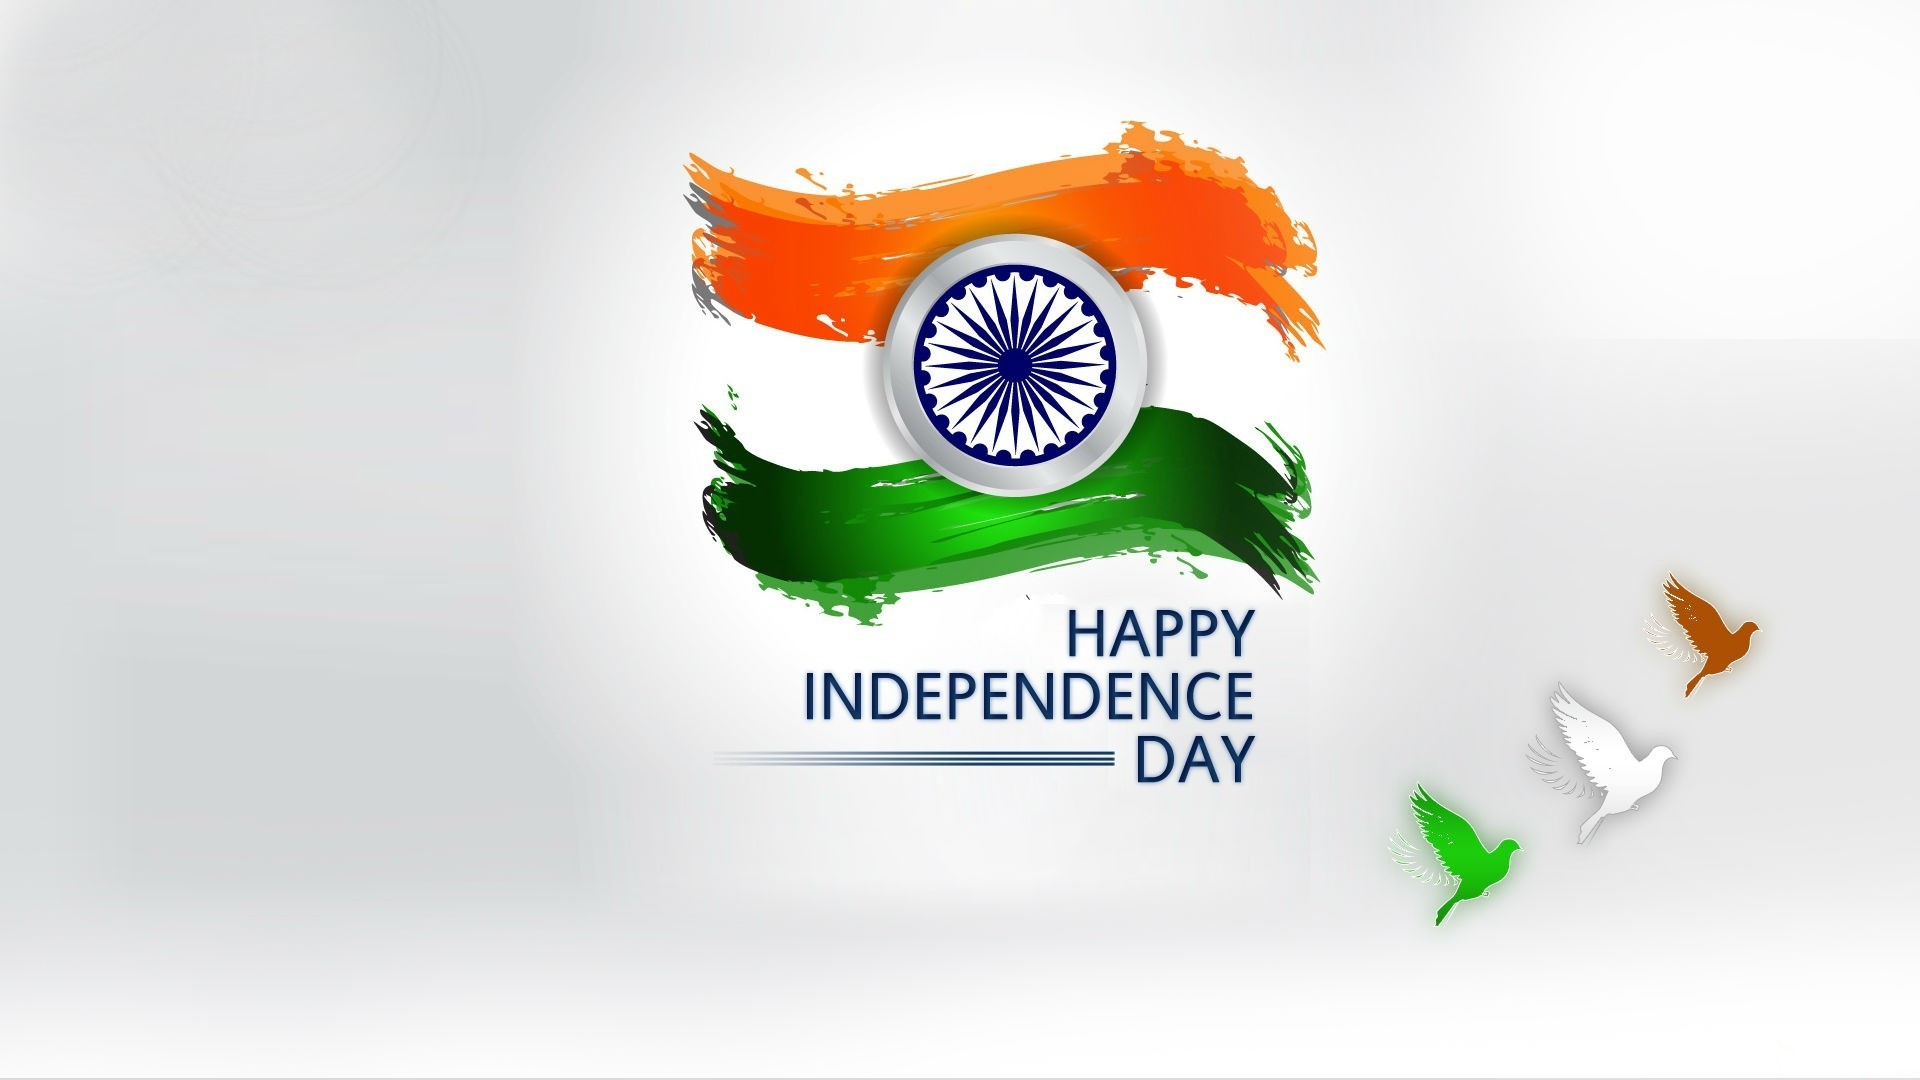 Free Happy Independence Day Hd Wallpapers